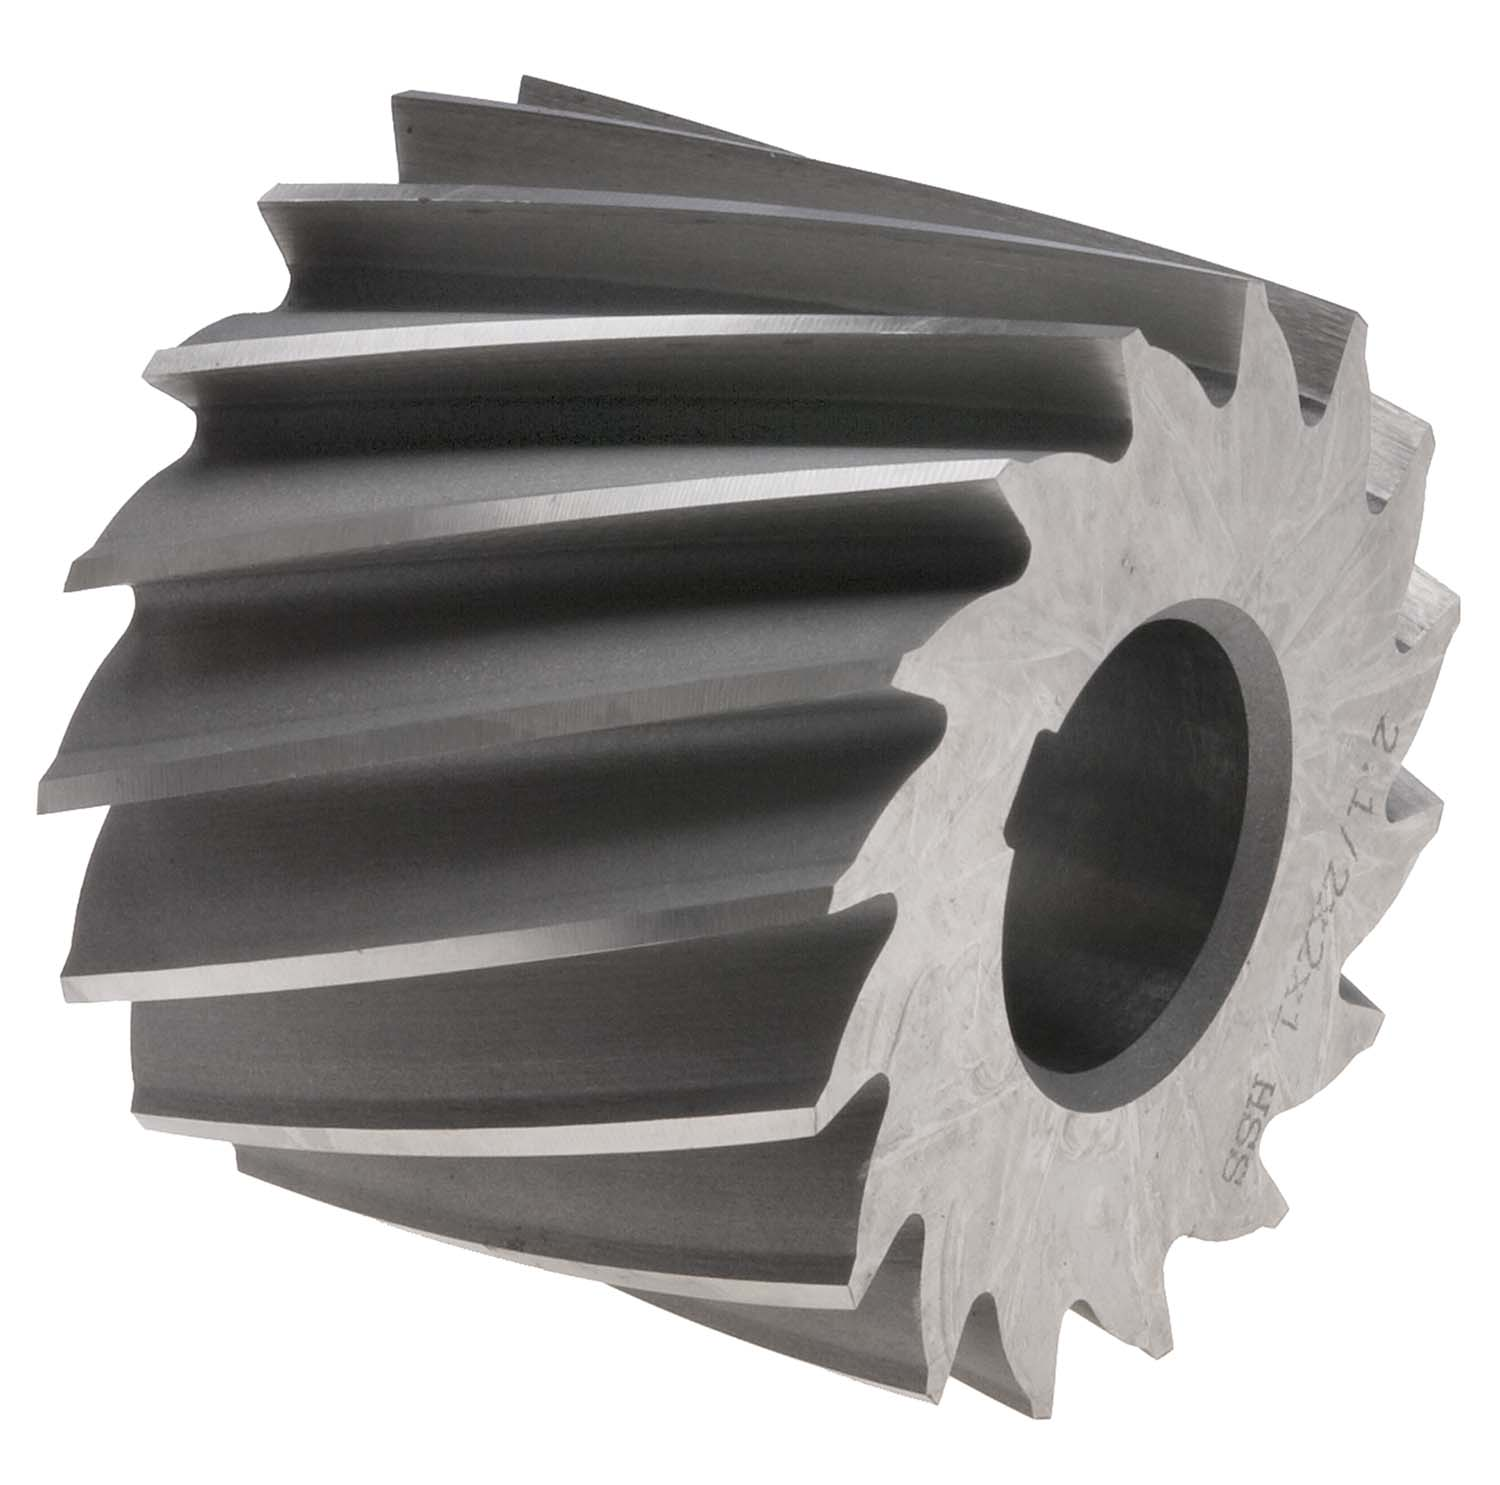 3 X 1/2 X 1-1/4 Plain Milling Cutter, High Speed Steel